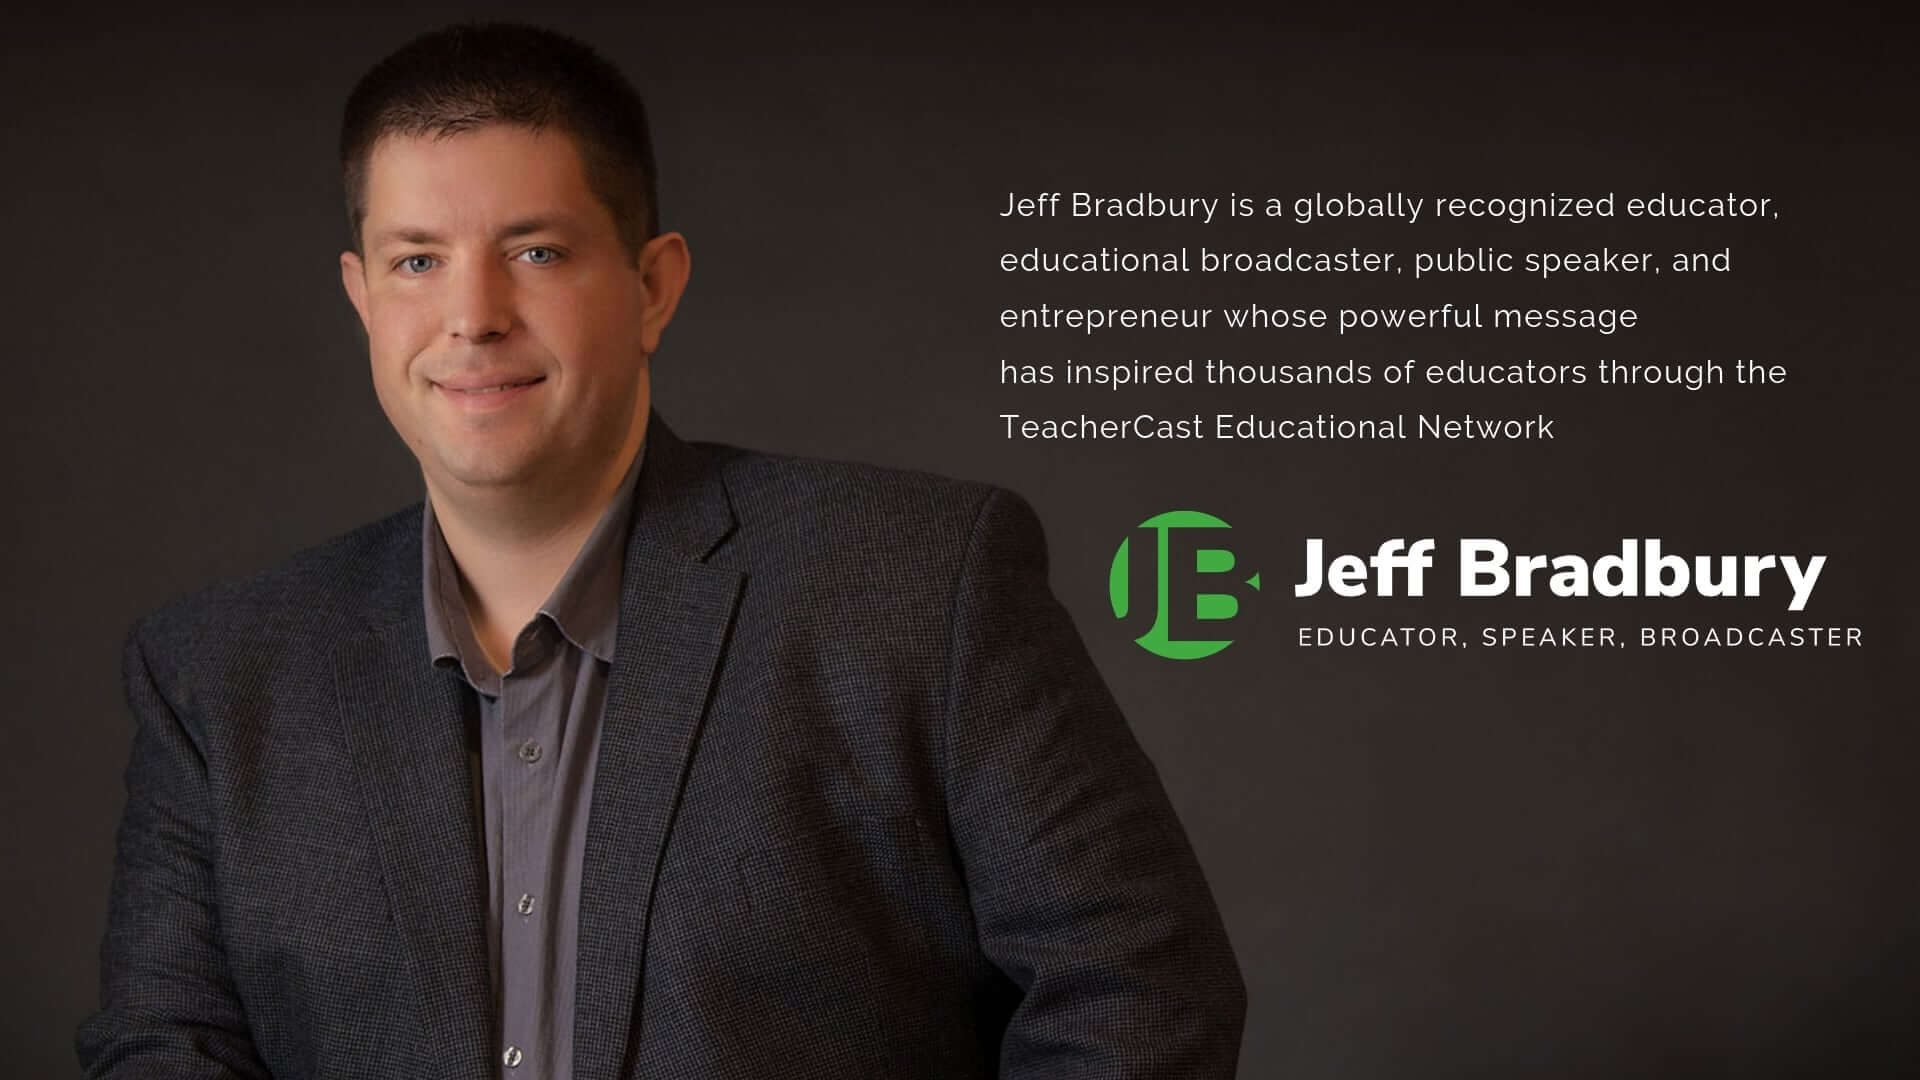 Jeffrey Bradbury | Educator - Broadcaster